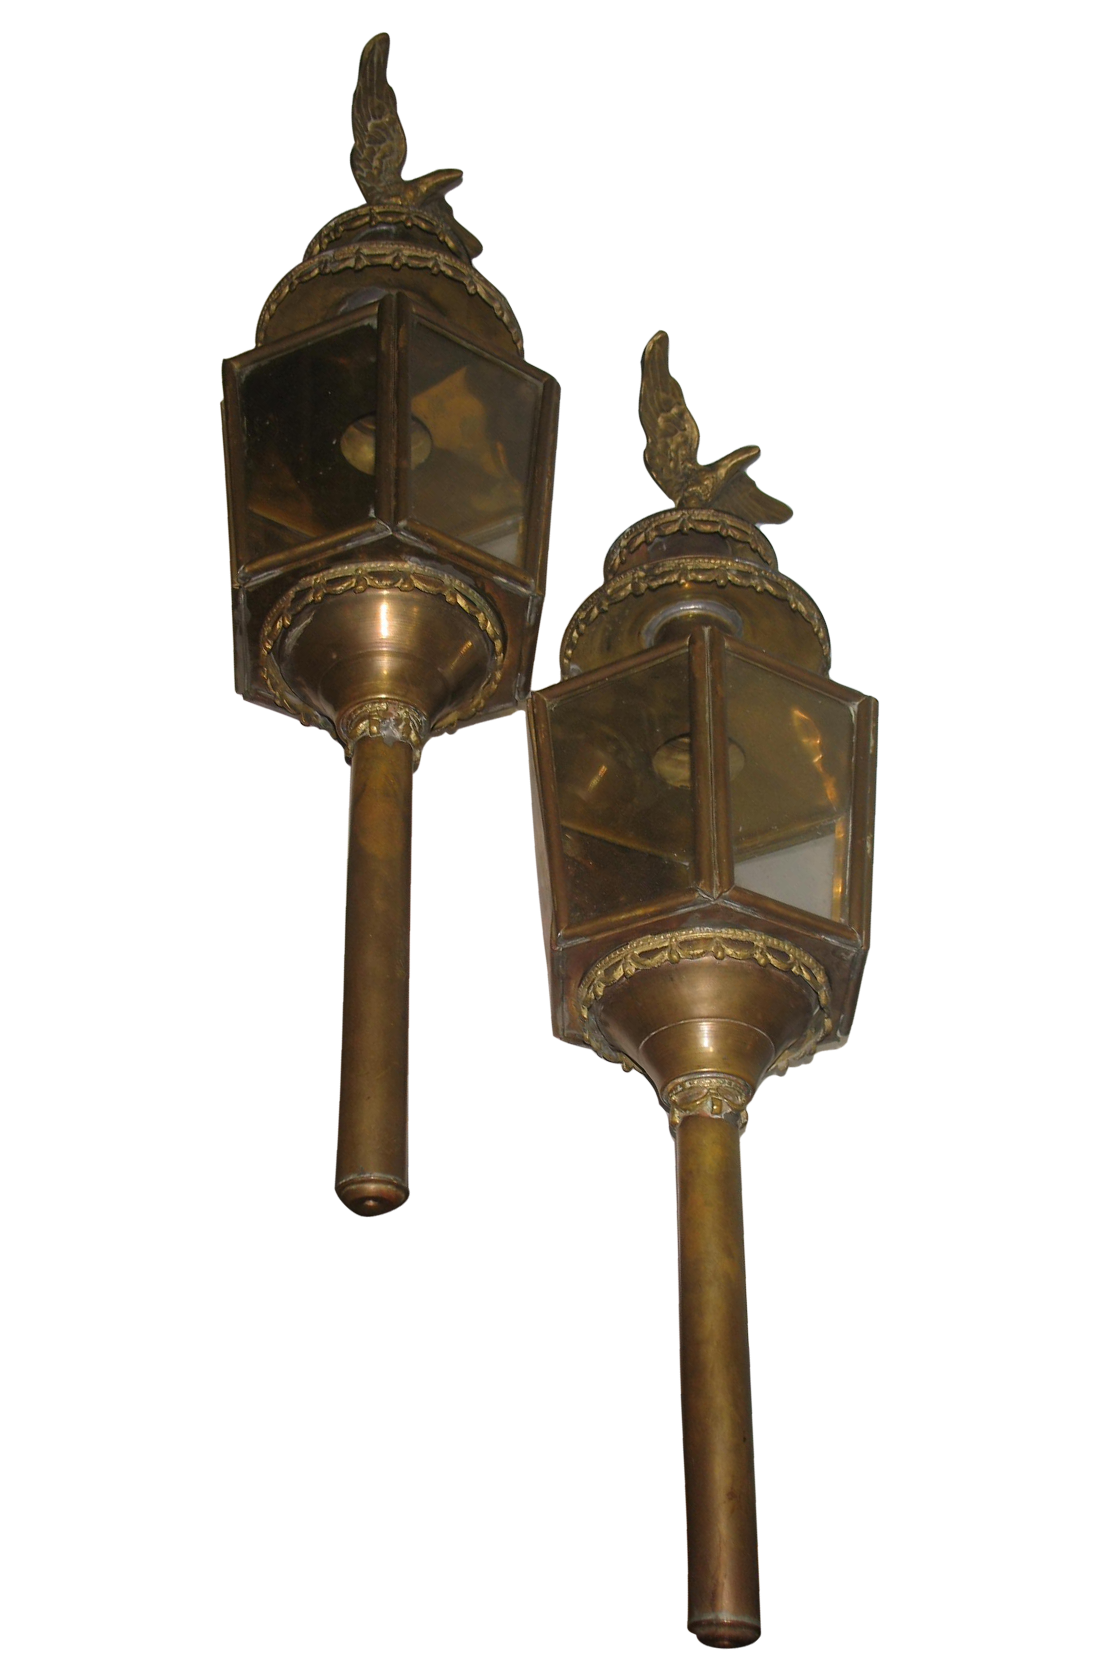 Antique English Brass Carriage Lantern With Eagle Coach Lamps Pair Chairish